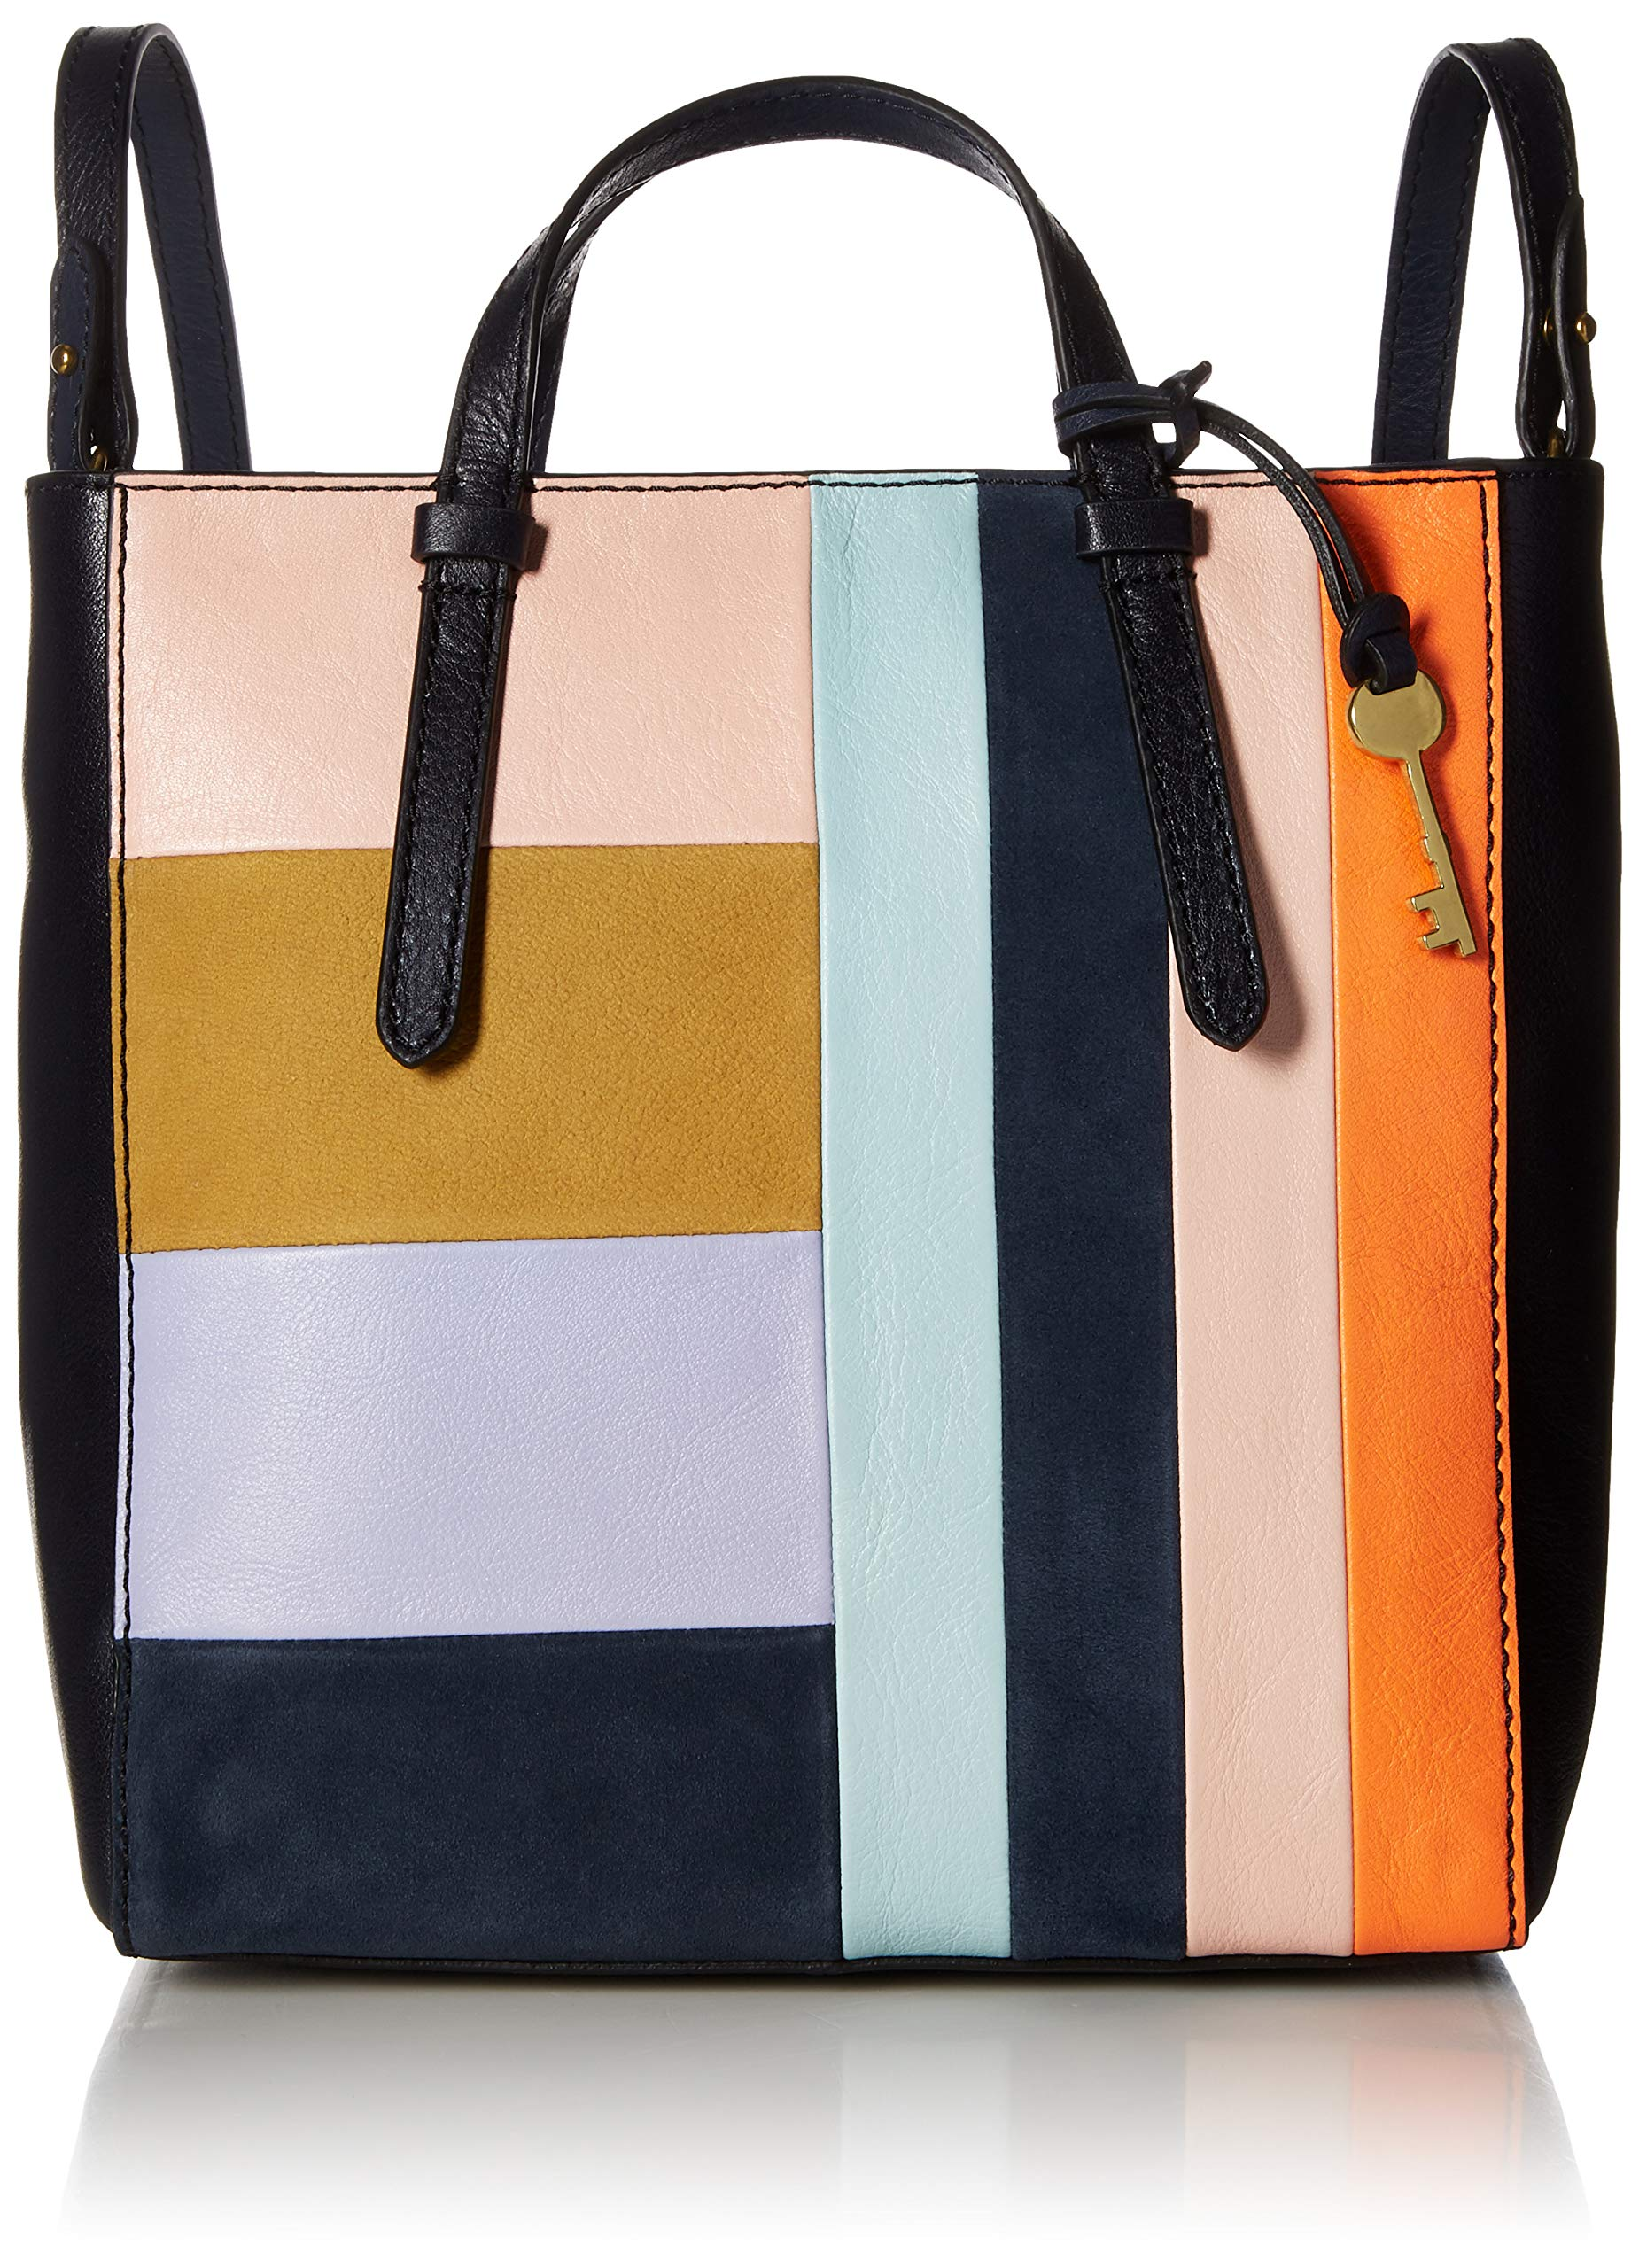 Fossil Womens Camilla Convertible Small Backpack, Bright patchwork by Fossil (Image #1)